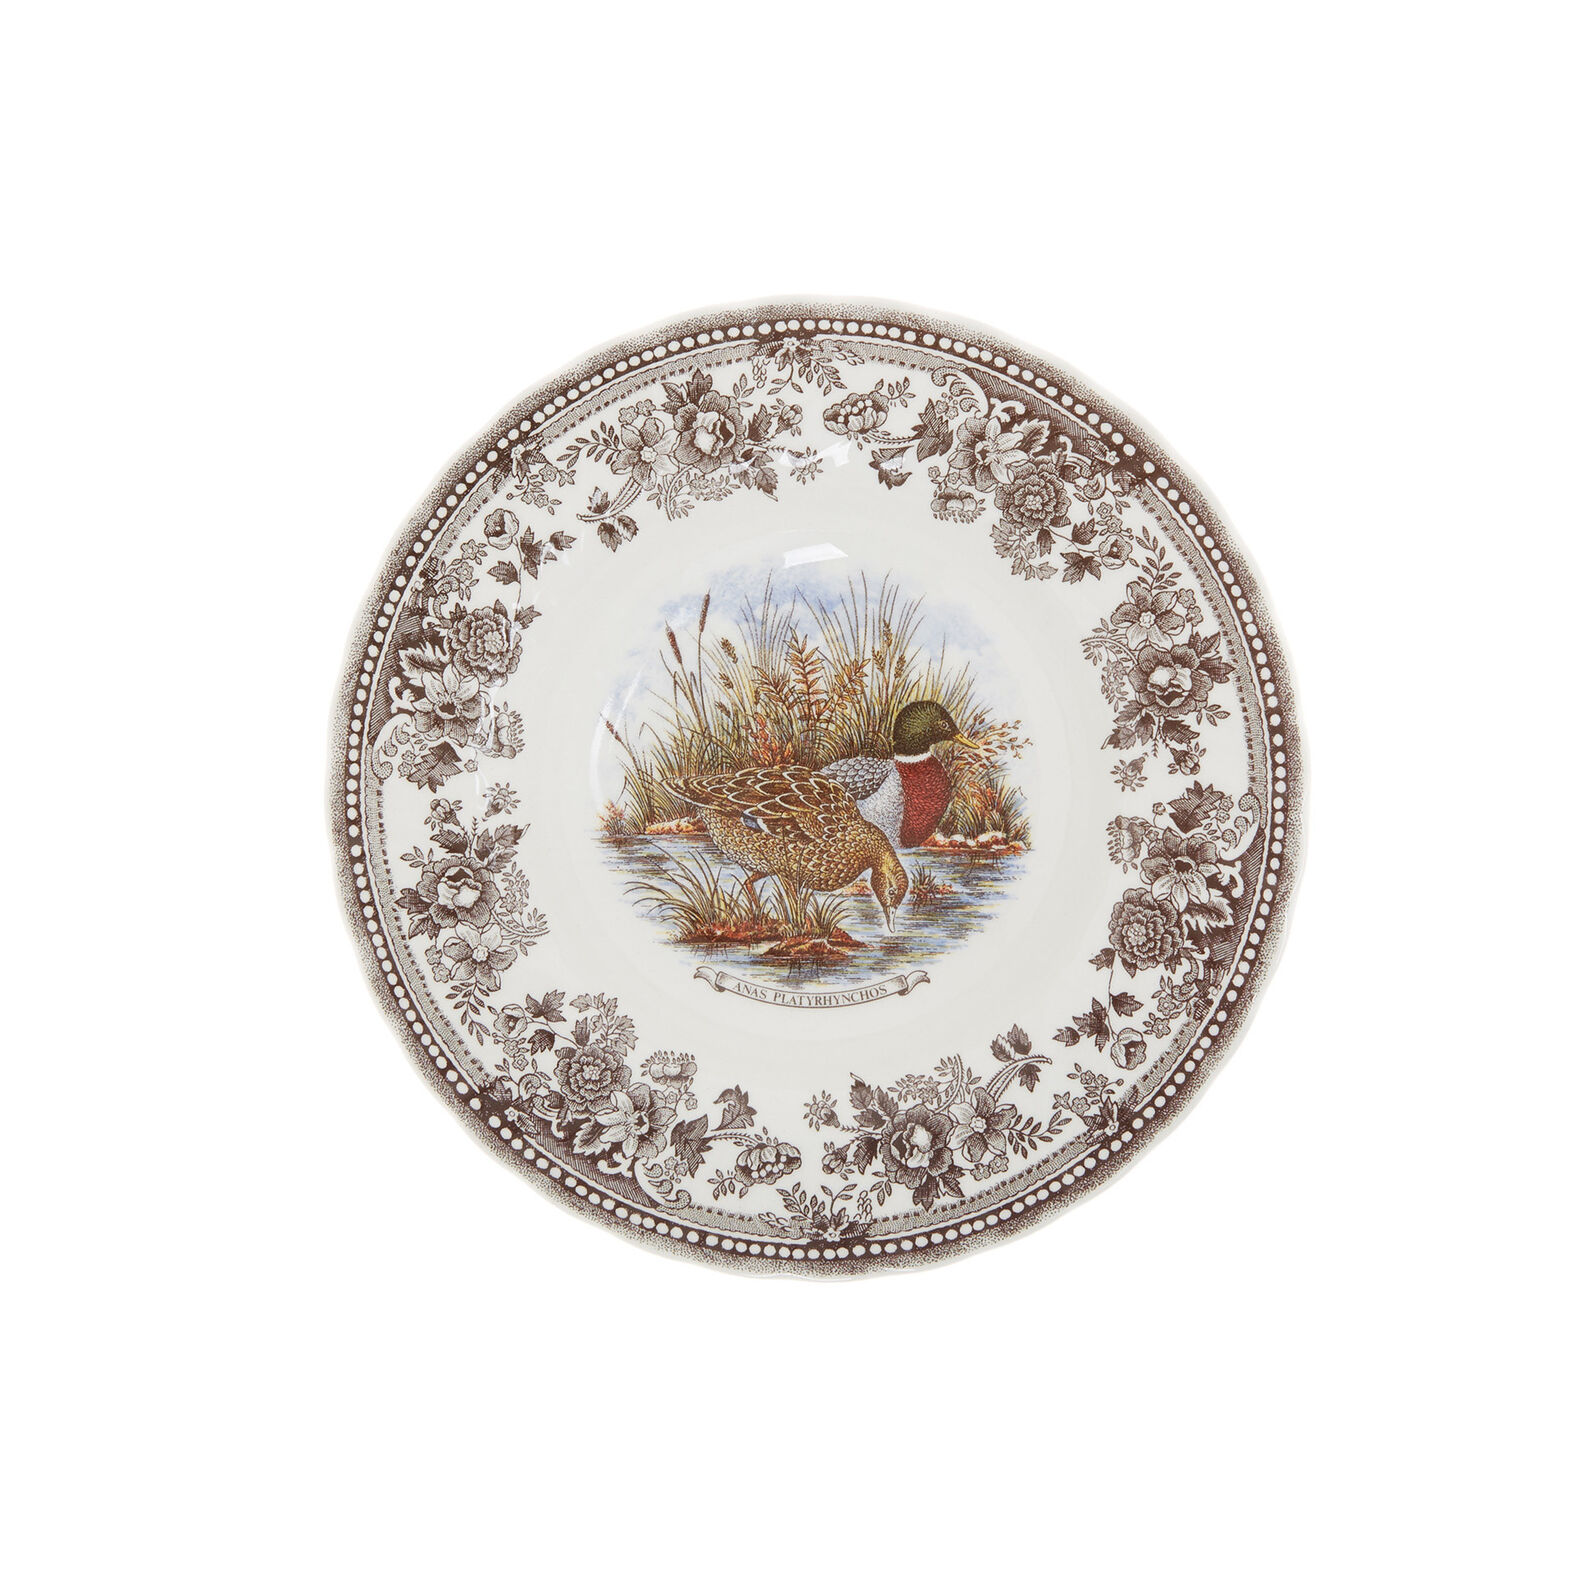 Churchill set of 18 ceramic plates with hunting motif